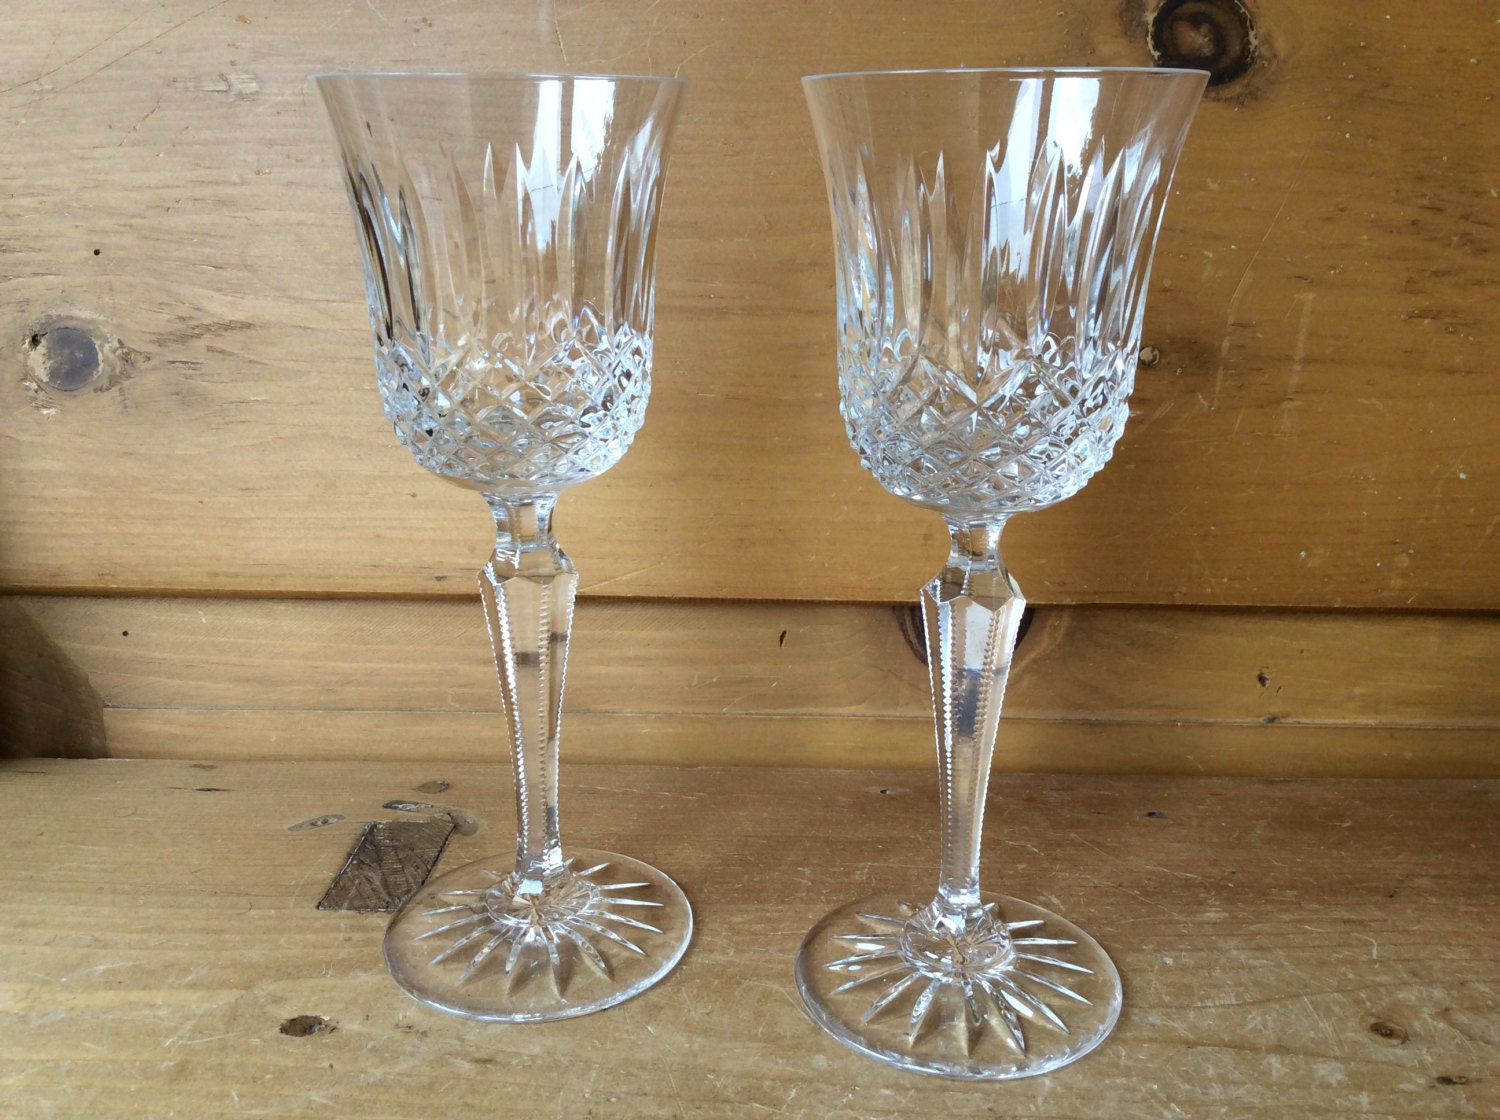 Vintage wedgwood wine glasses cut crystal set of 2 excellent - Wedgwood crystal wine glasses ...